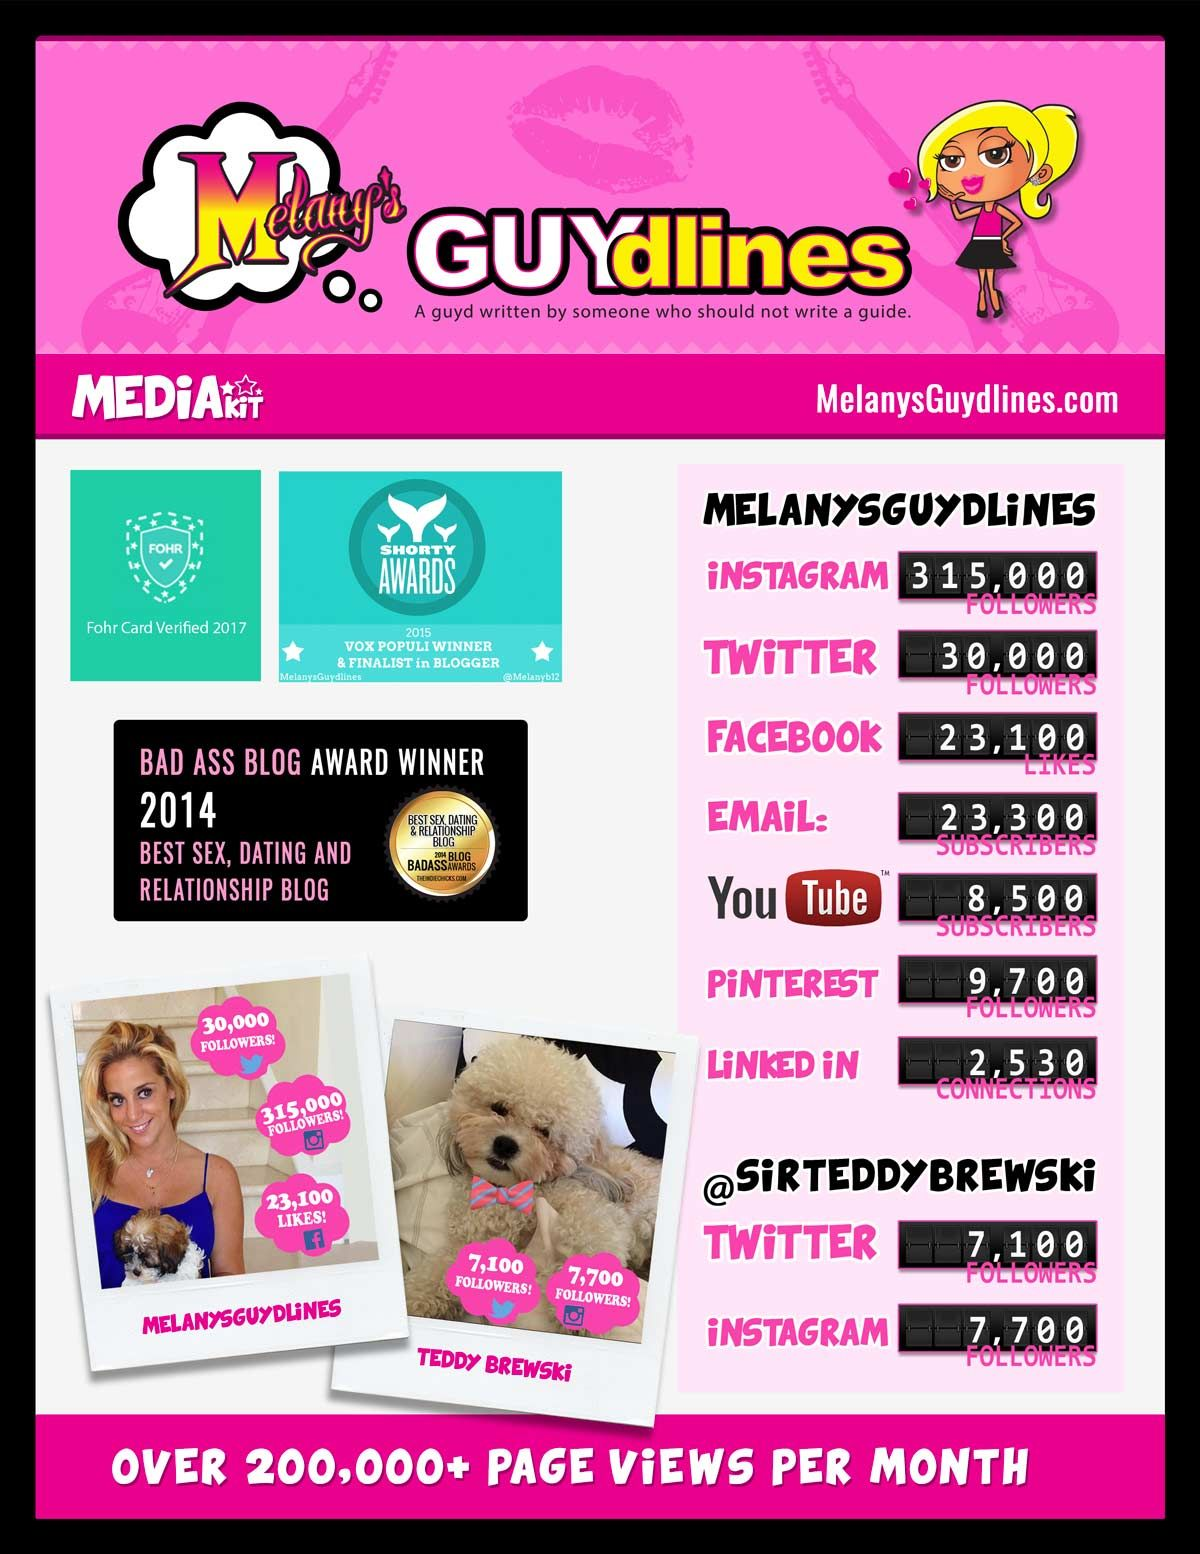 Media kit funny lifestyle relationship blog with a